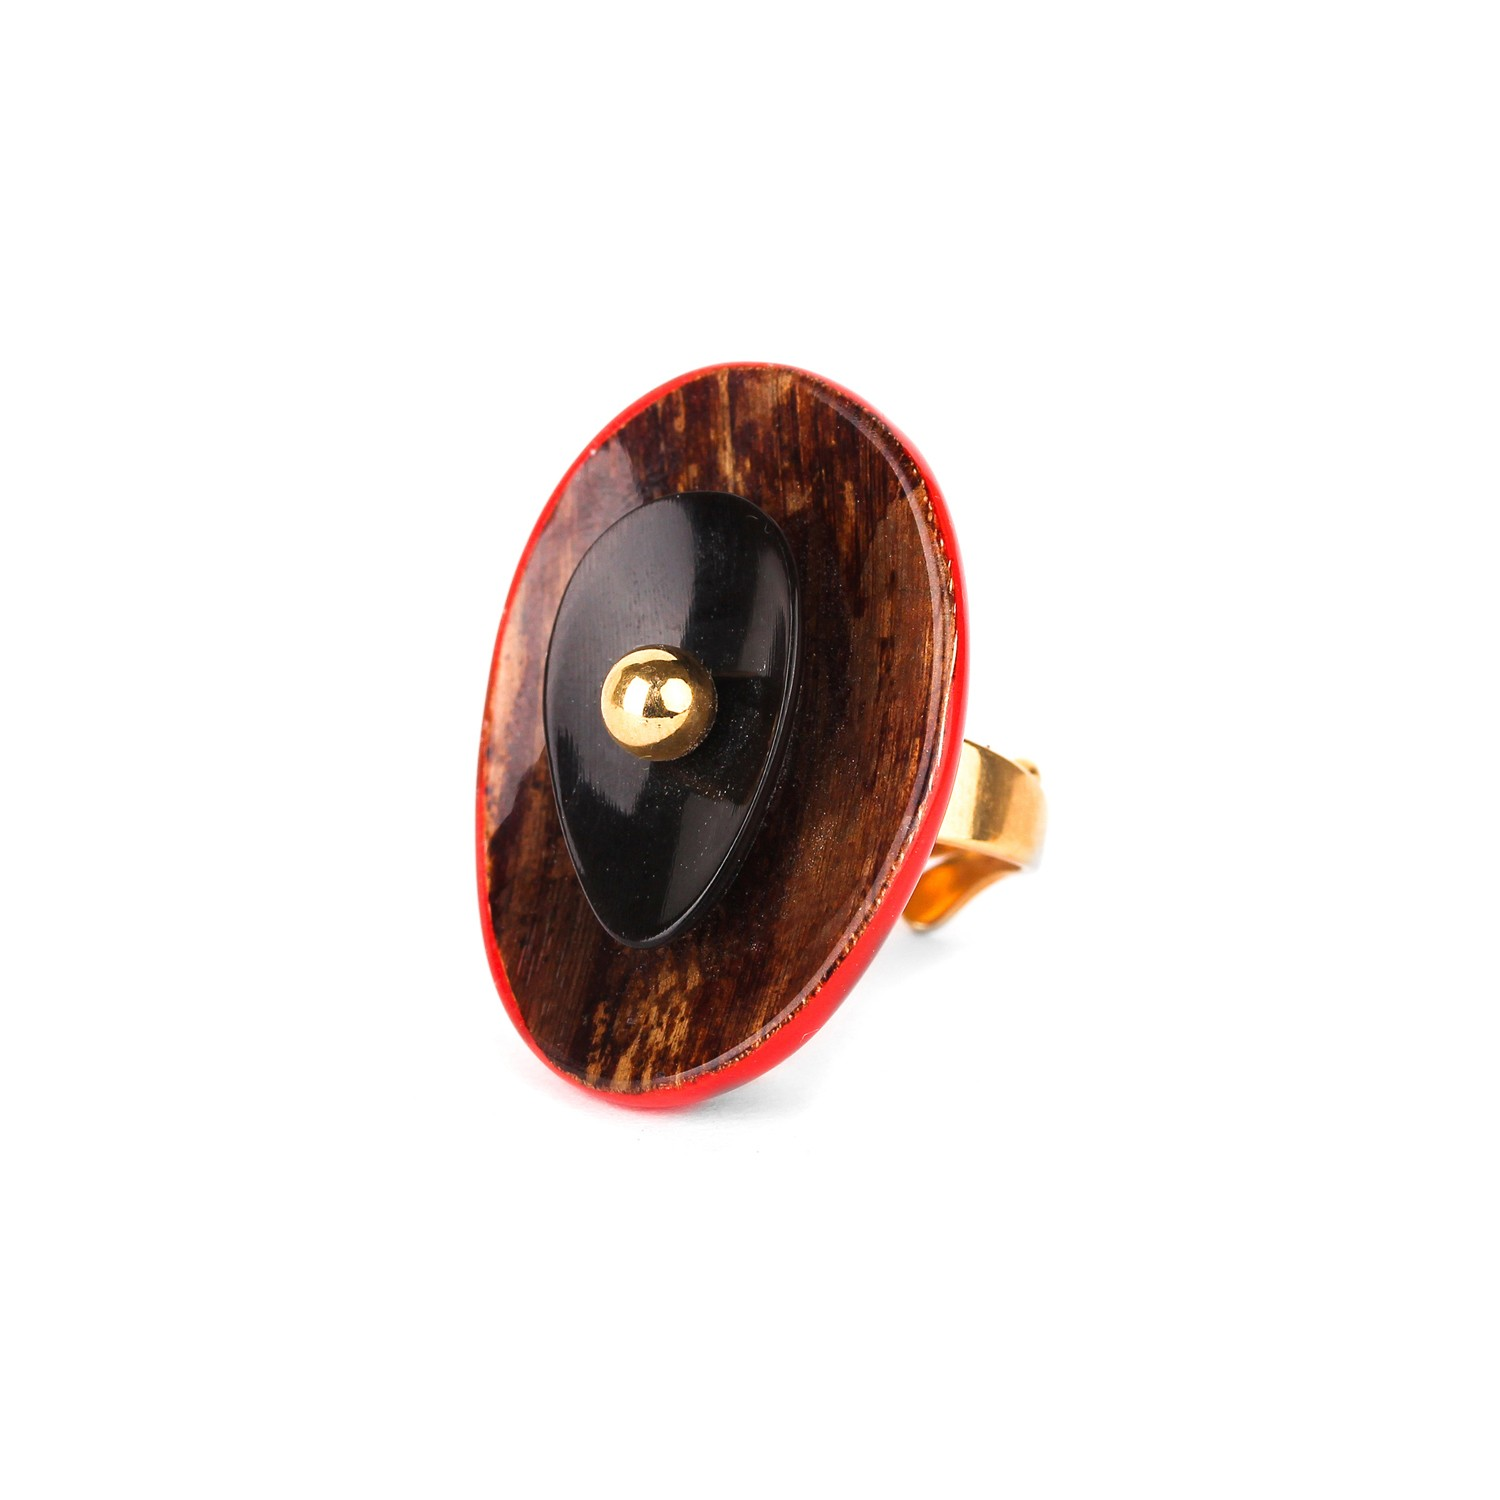 MARIE GALANTE ring w/horn element